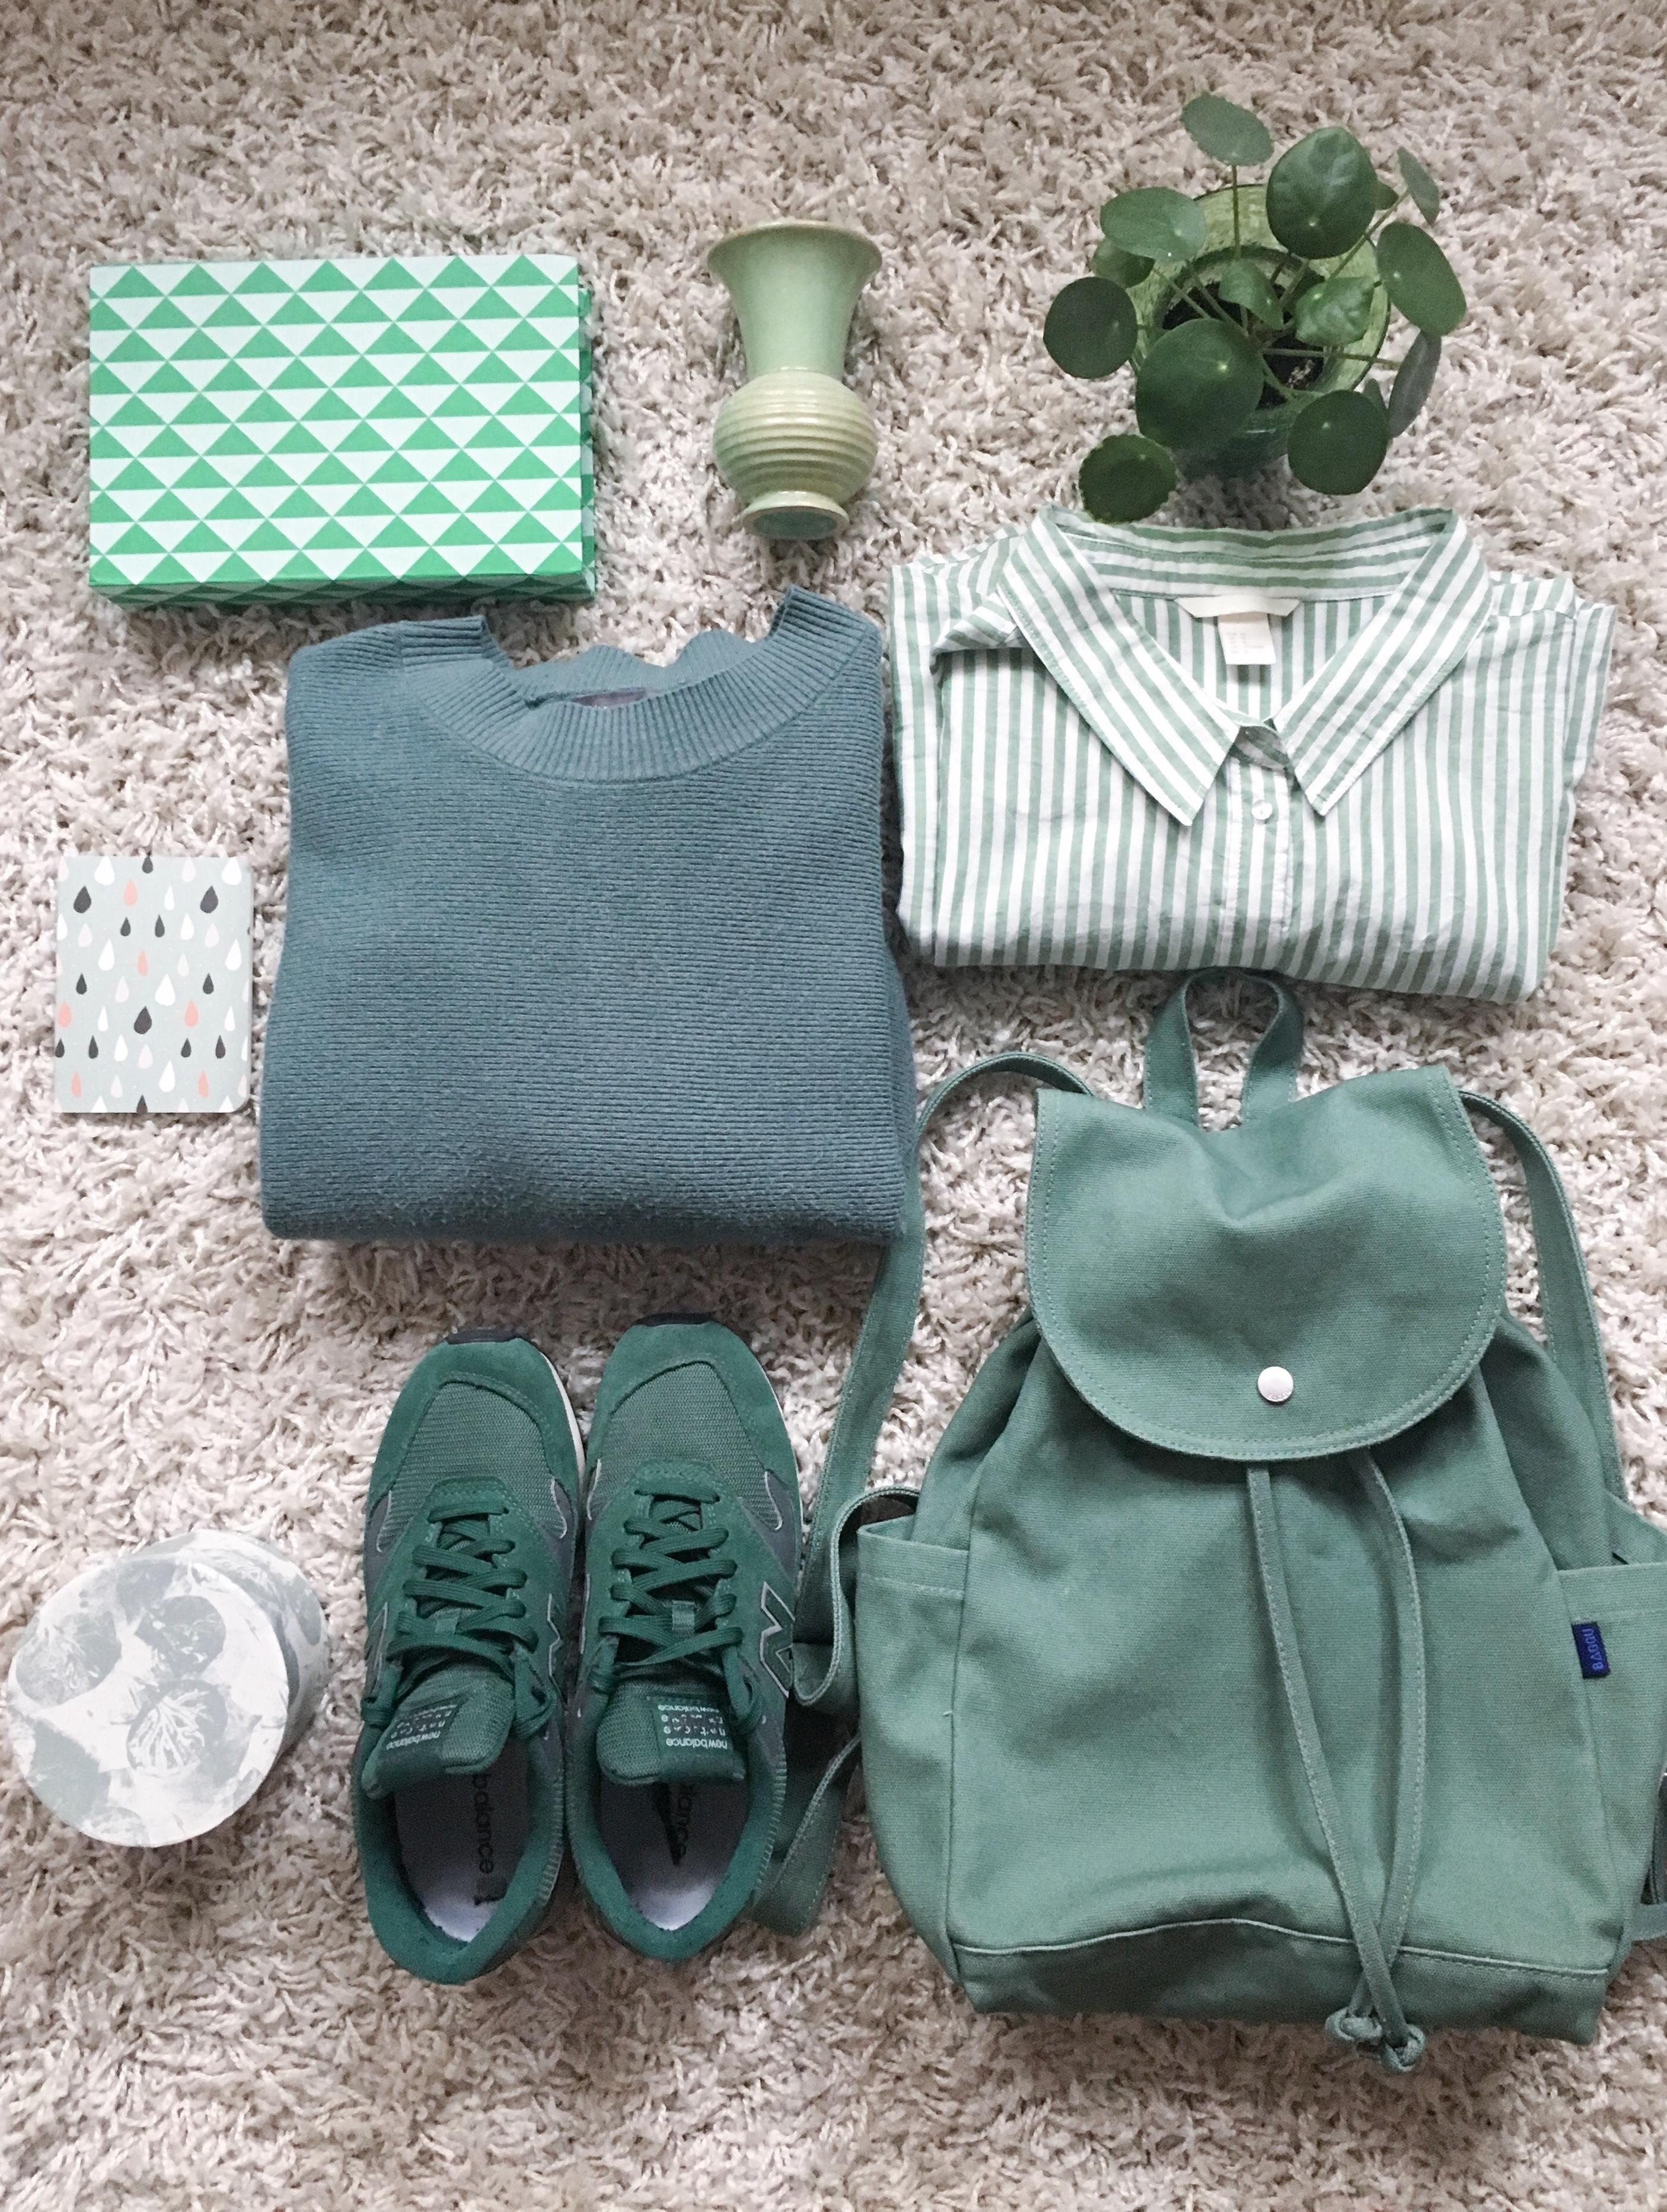 Flatlay green outfit accessoires hm spring pilea  c91288b4 6394 4732 afcf 254213bd4fd8